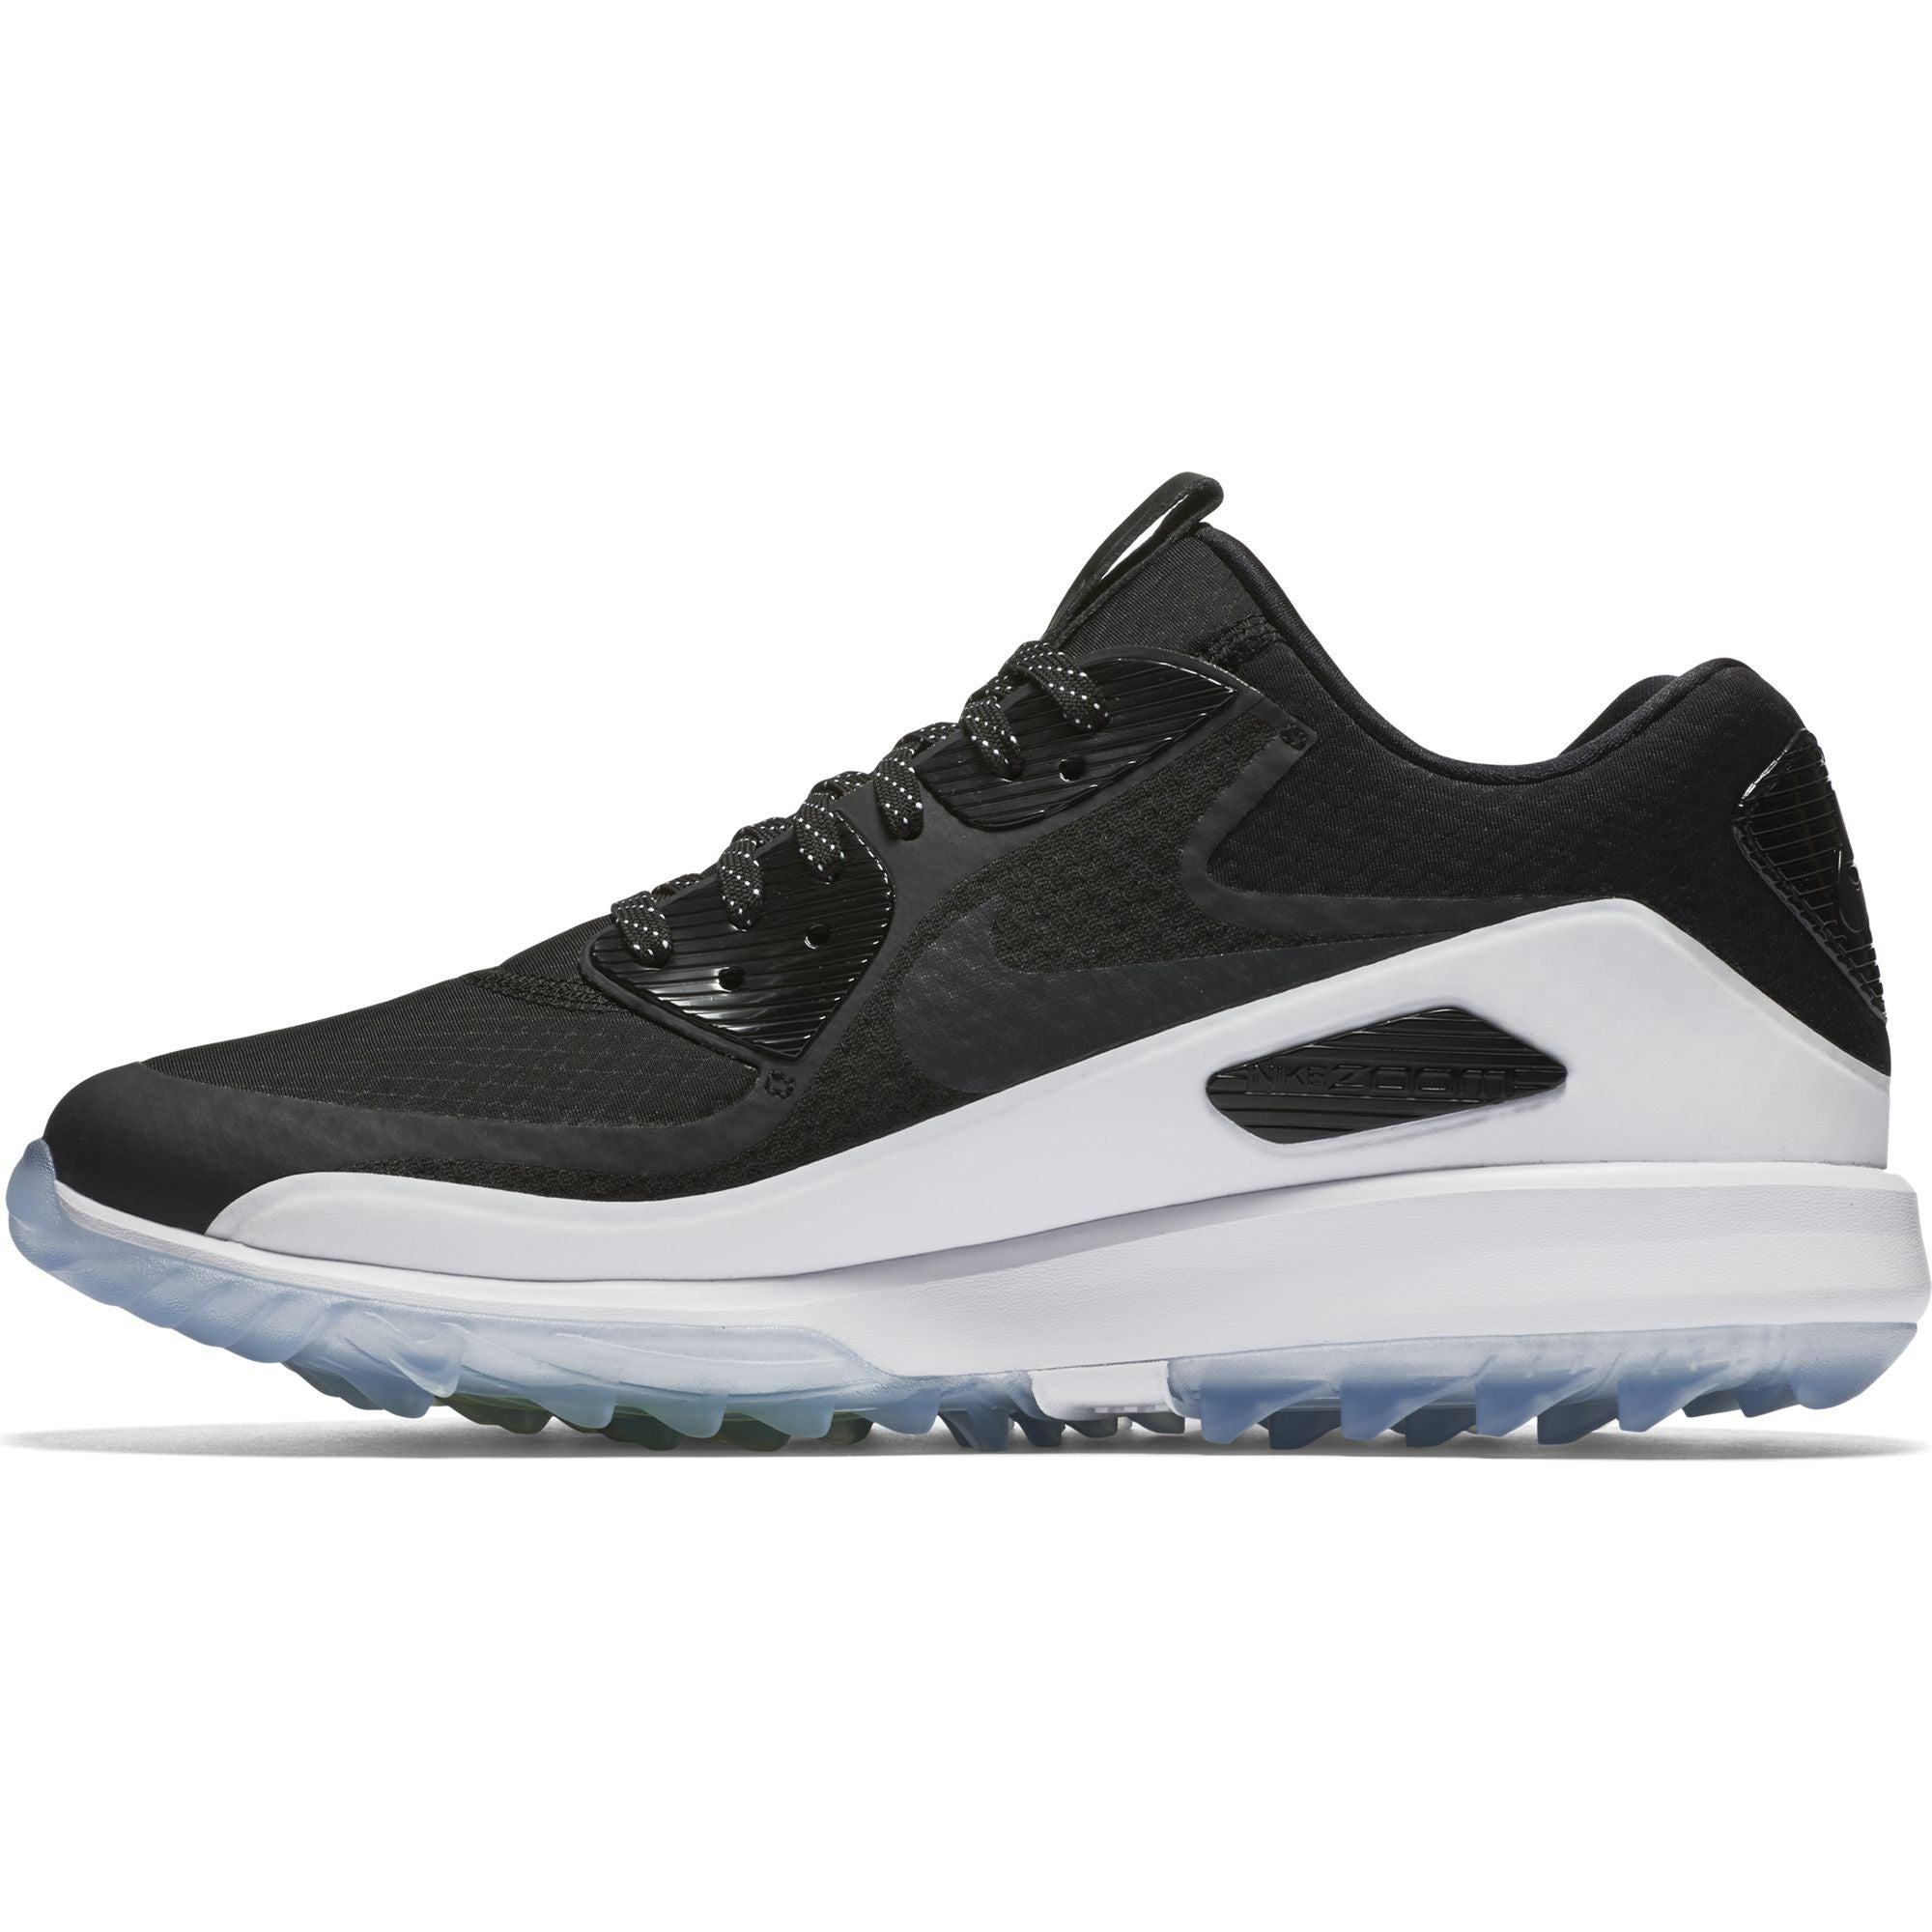 competitive price 0cf9c 888f4 ... Men s - NIKE Air Zoom 90 IT - Black Anthracite-White- ...